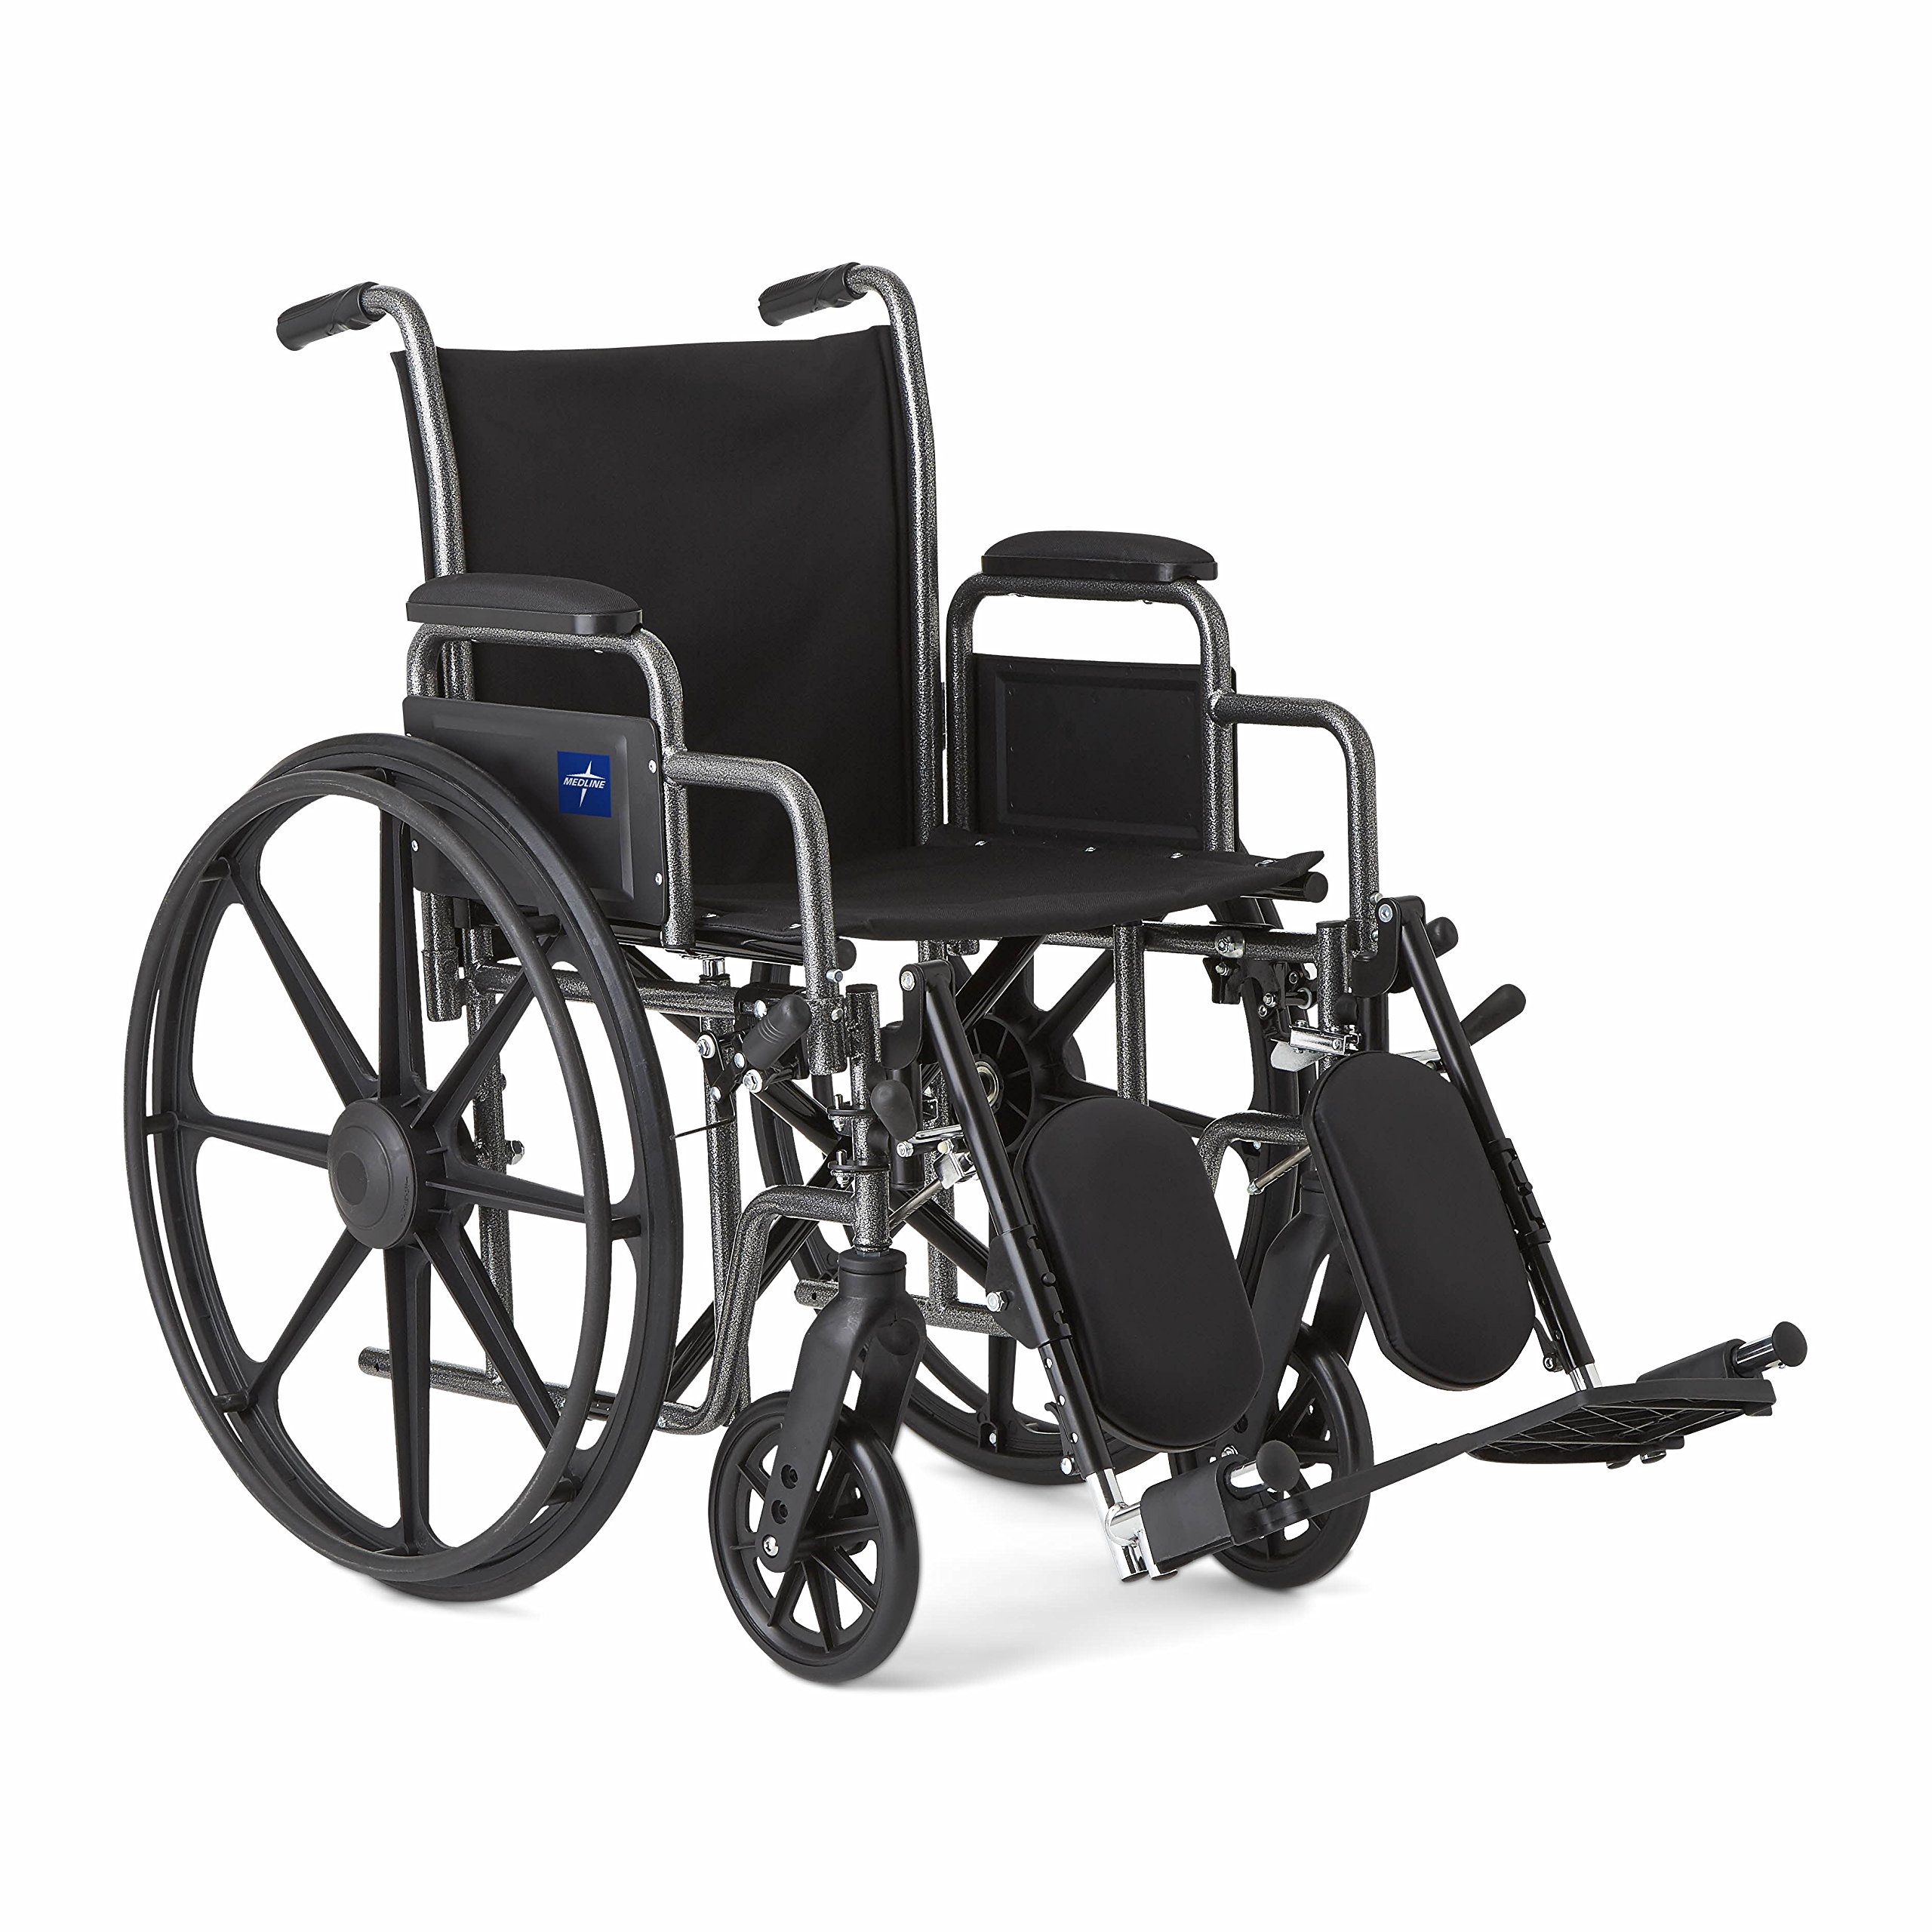 Medline Comfort Driven Wheelchair with Removable Desk Arms and Elevating Leg Rests, 18'' Seat by Medline